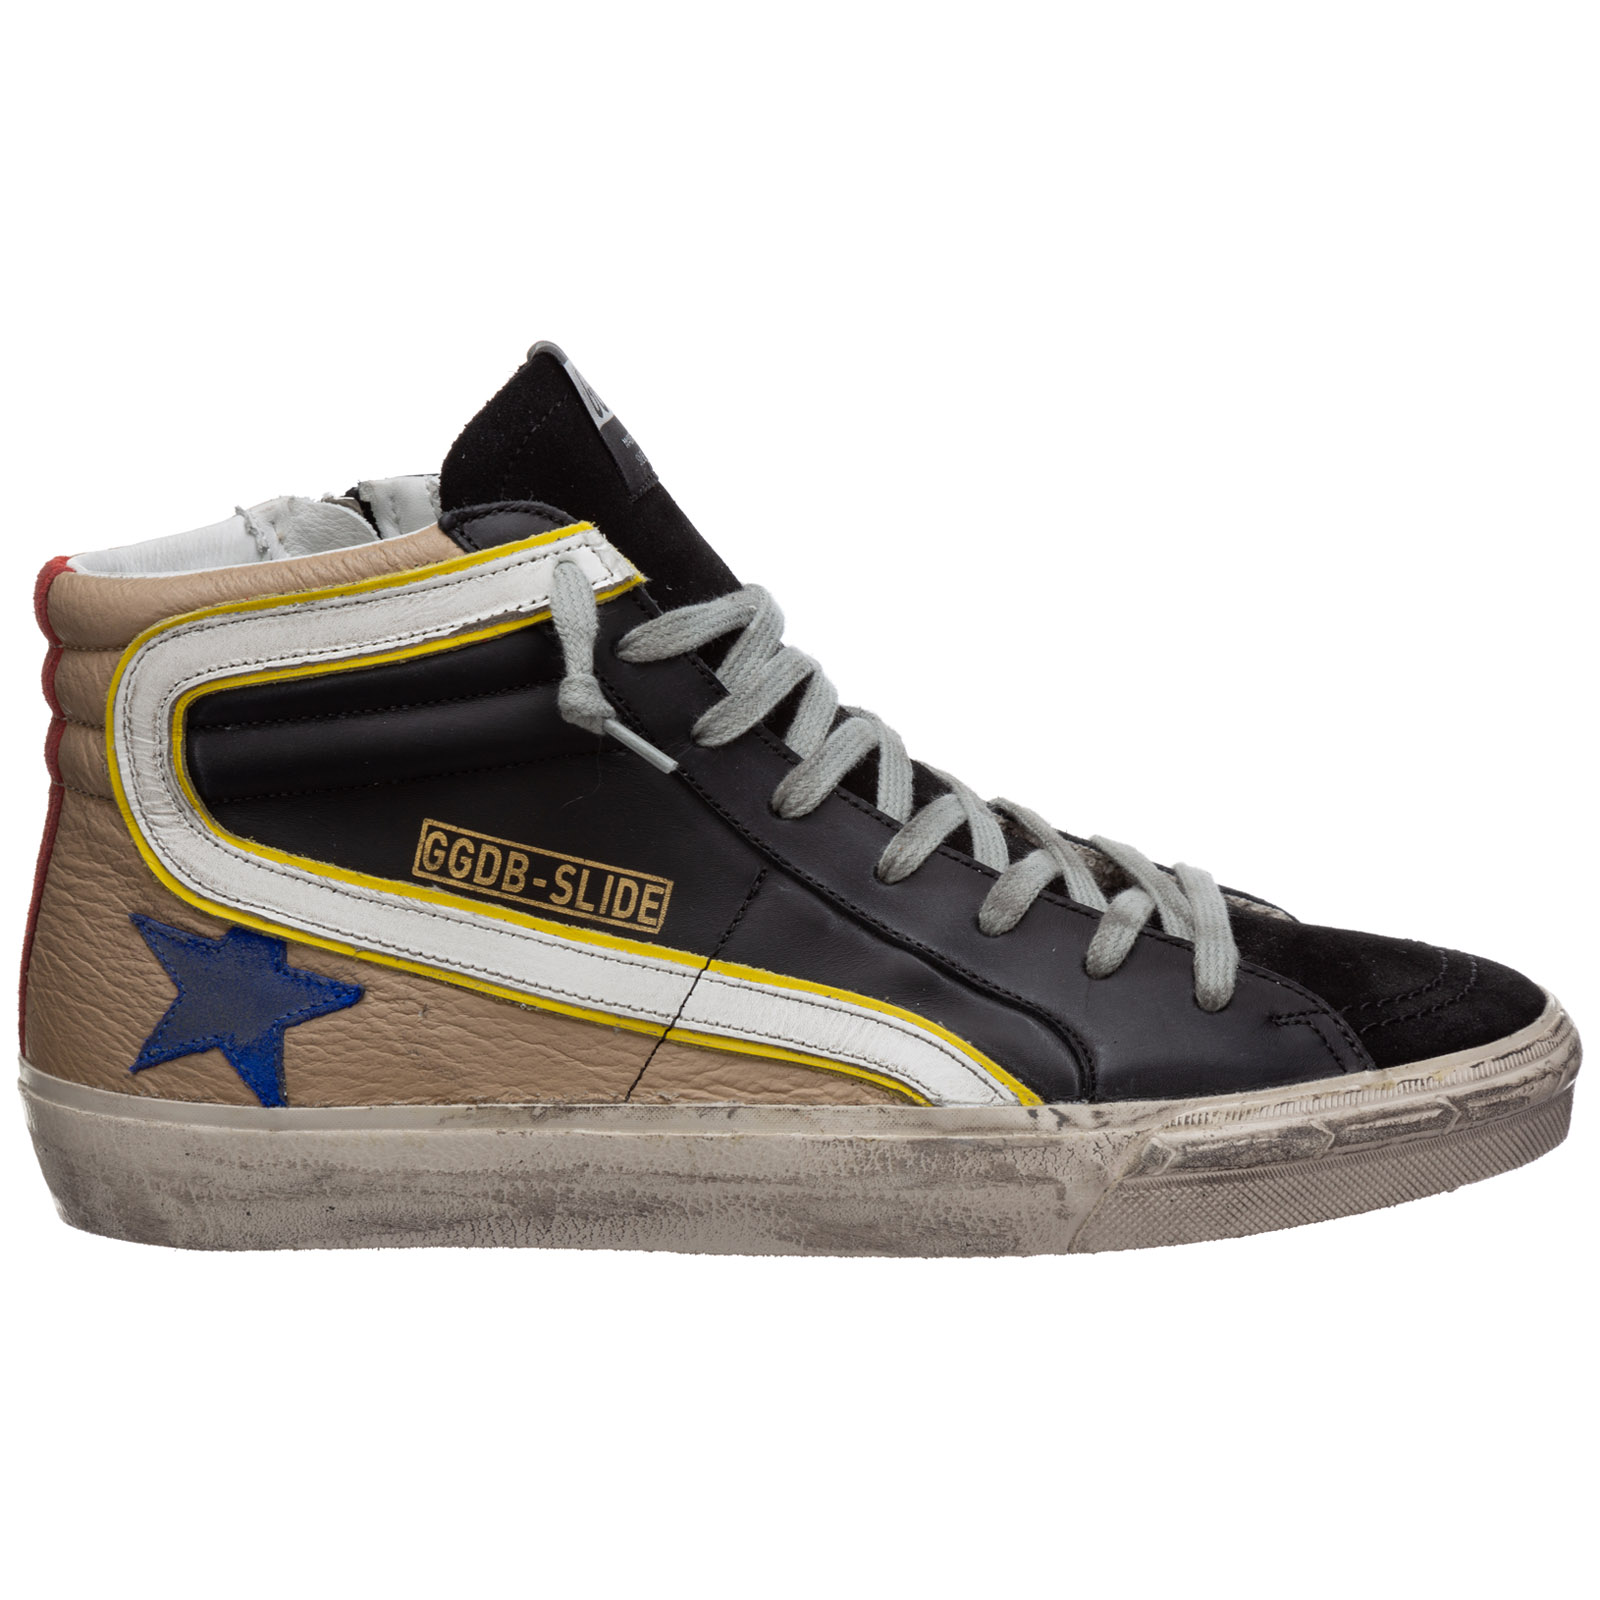 Men's shoes high top leather trainers sneakers slide